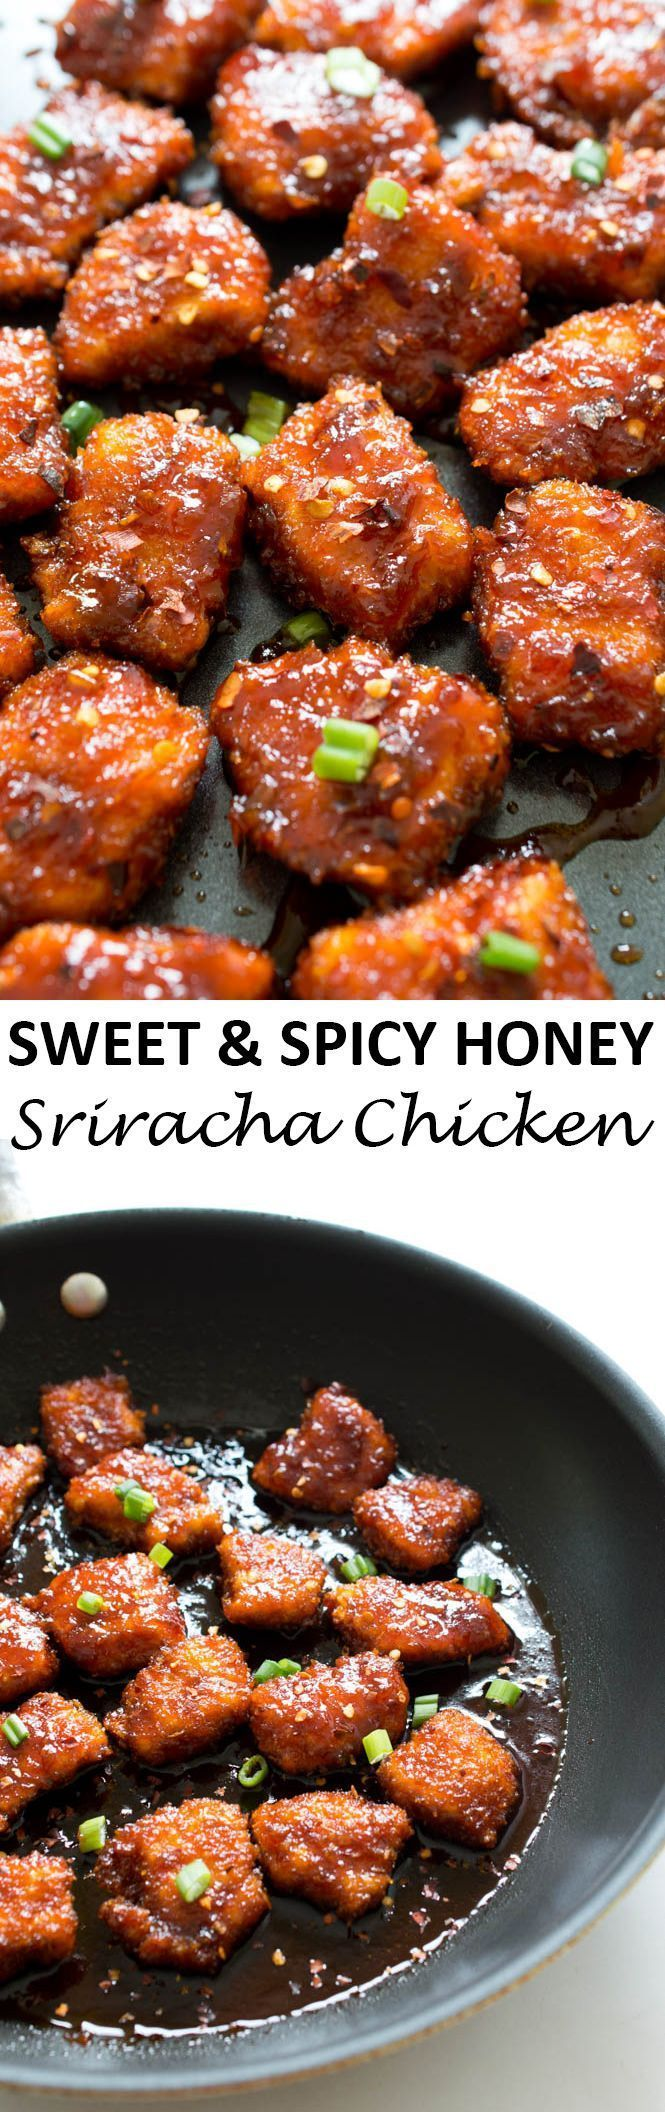 Sweet and Spicy Baked Honey Sriracha Chicken. Takes less than 30 minutes to make and is so much better than take-out.